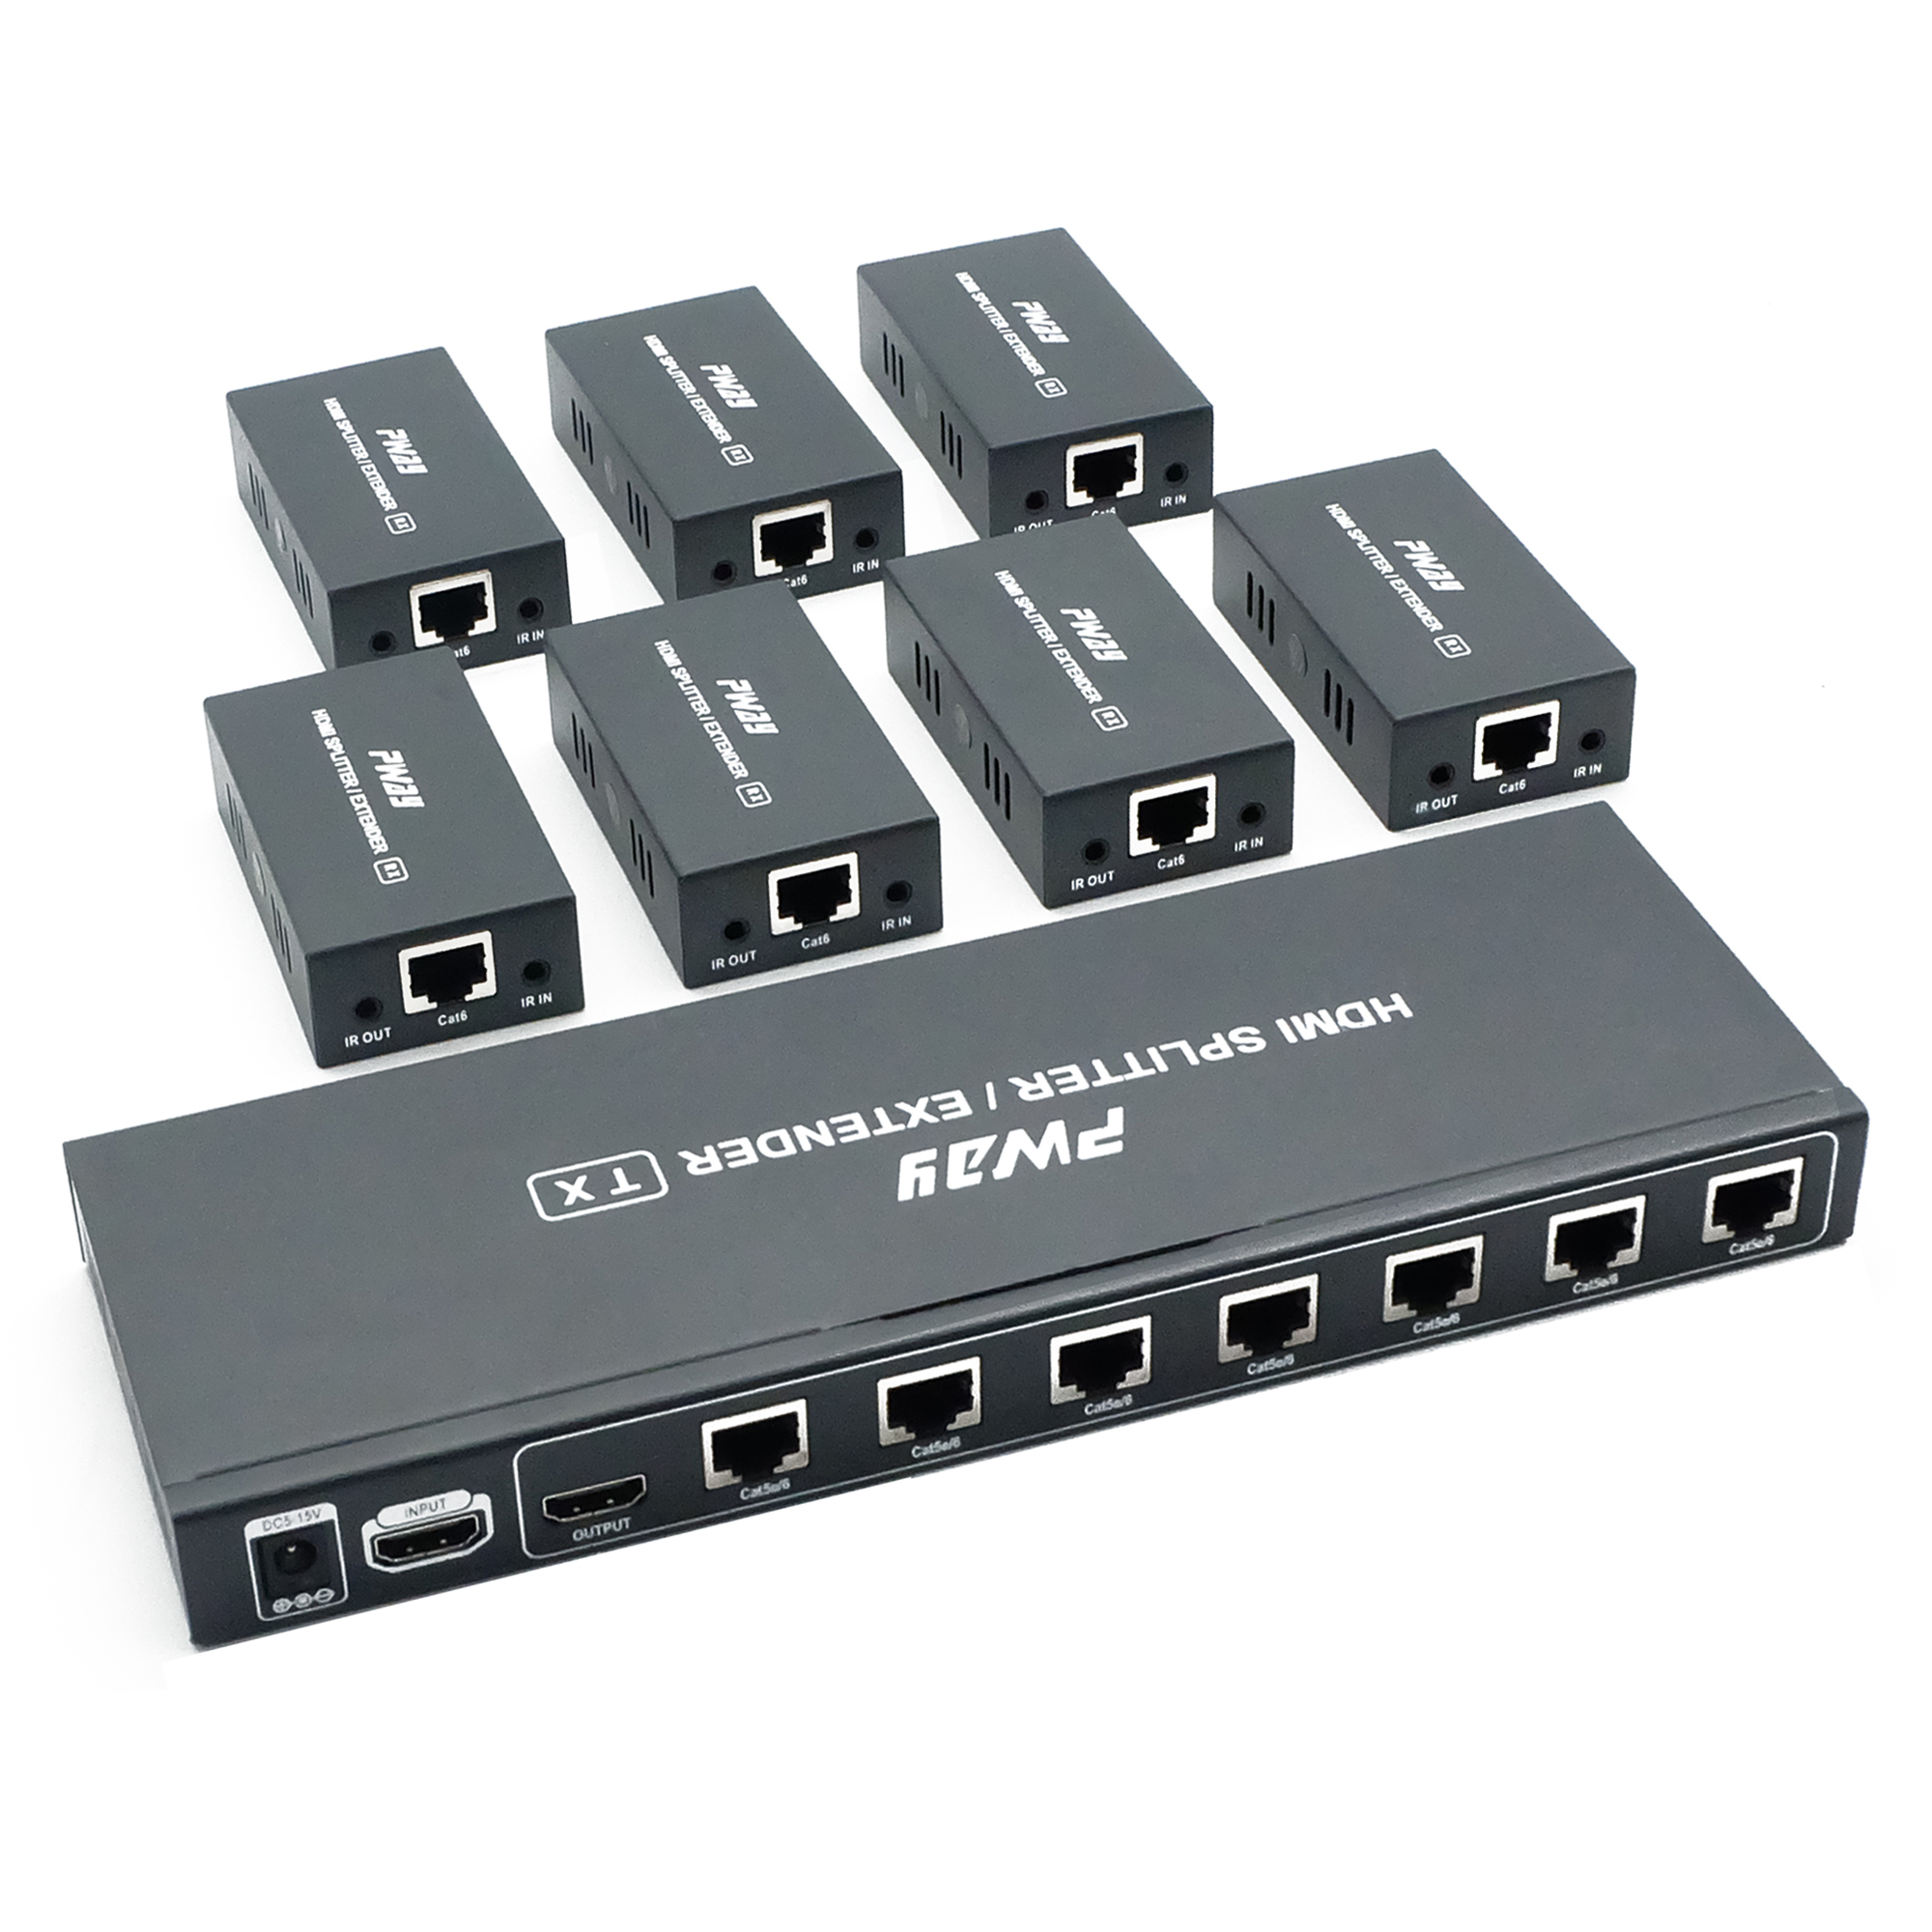 PWAY HTS0107 HDMI Extender splitter 60m Support IR Function and Loop out